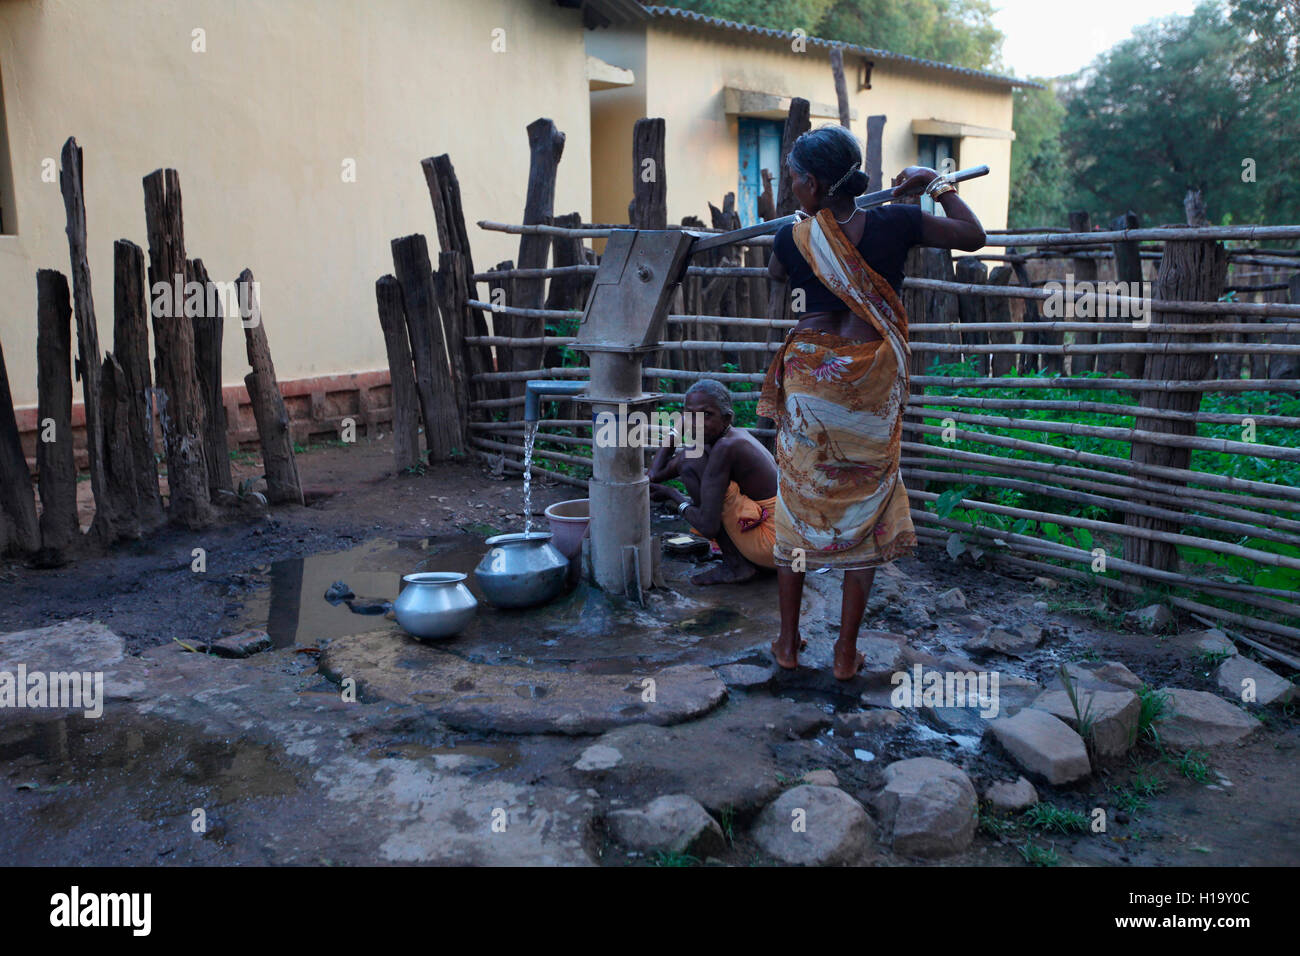 Women fetching water from handpump, Muria Tribe, Erdku village, Chattisgarh, India - Stock Image